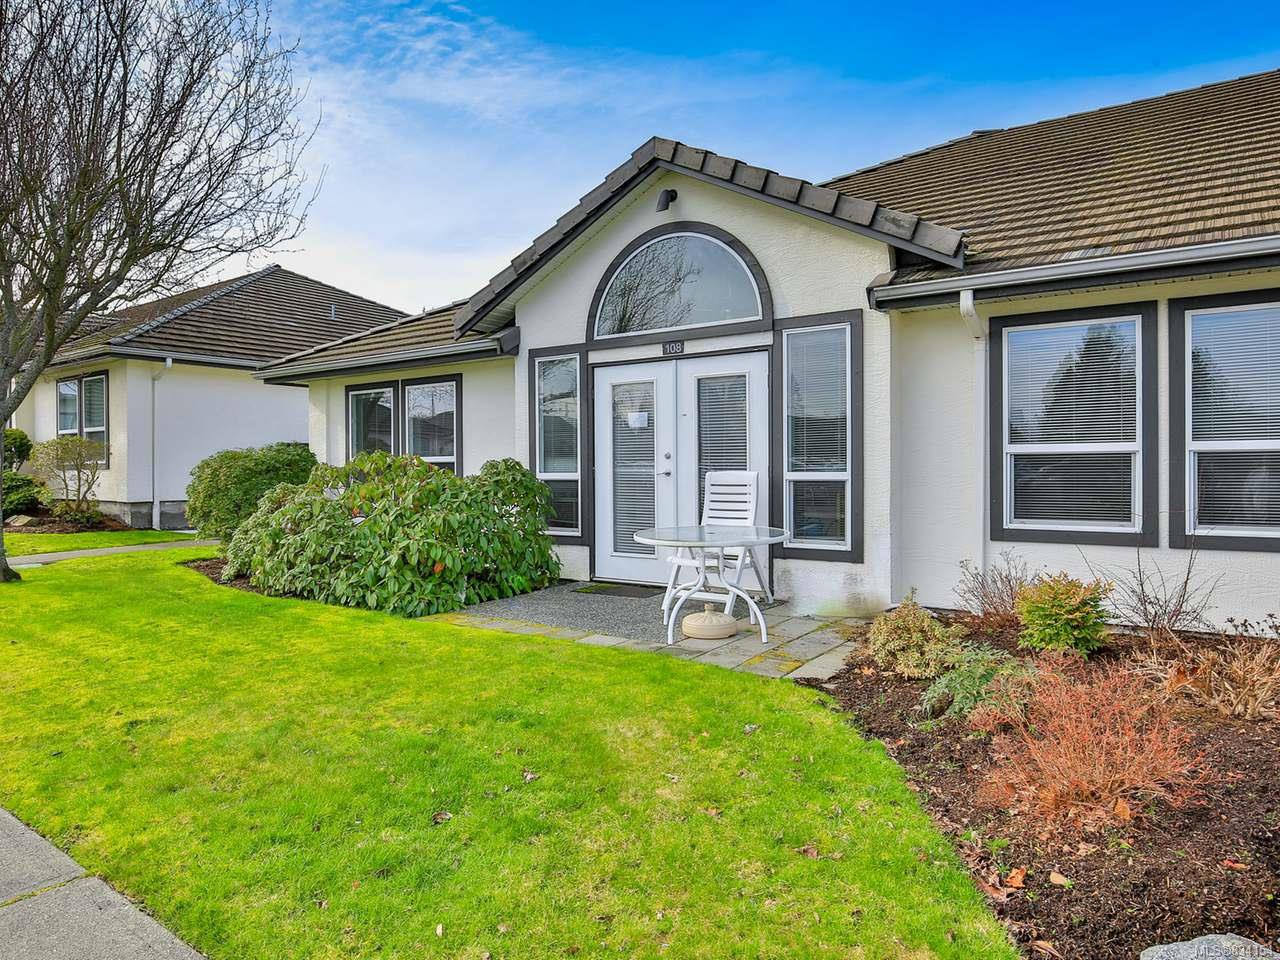 Main Photo: 108 264 McVickers St in PARKSVILLE: PQ Parksville Row/Townhouse for sale (Parksville/Qualicum)  : MLS®# 834154